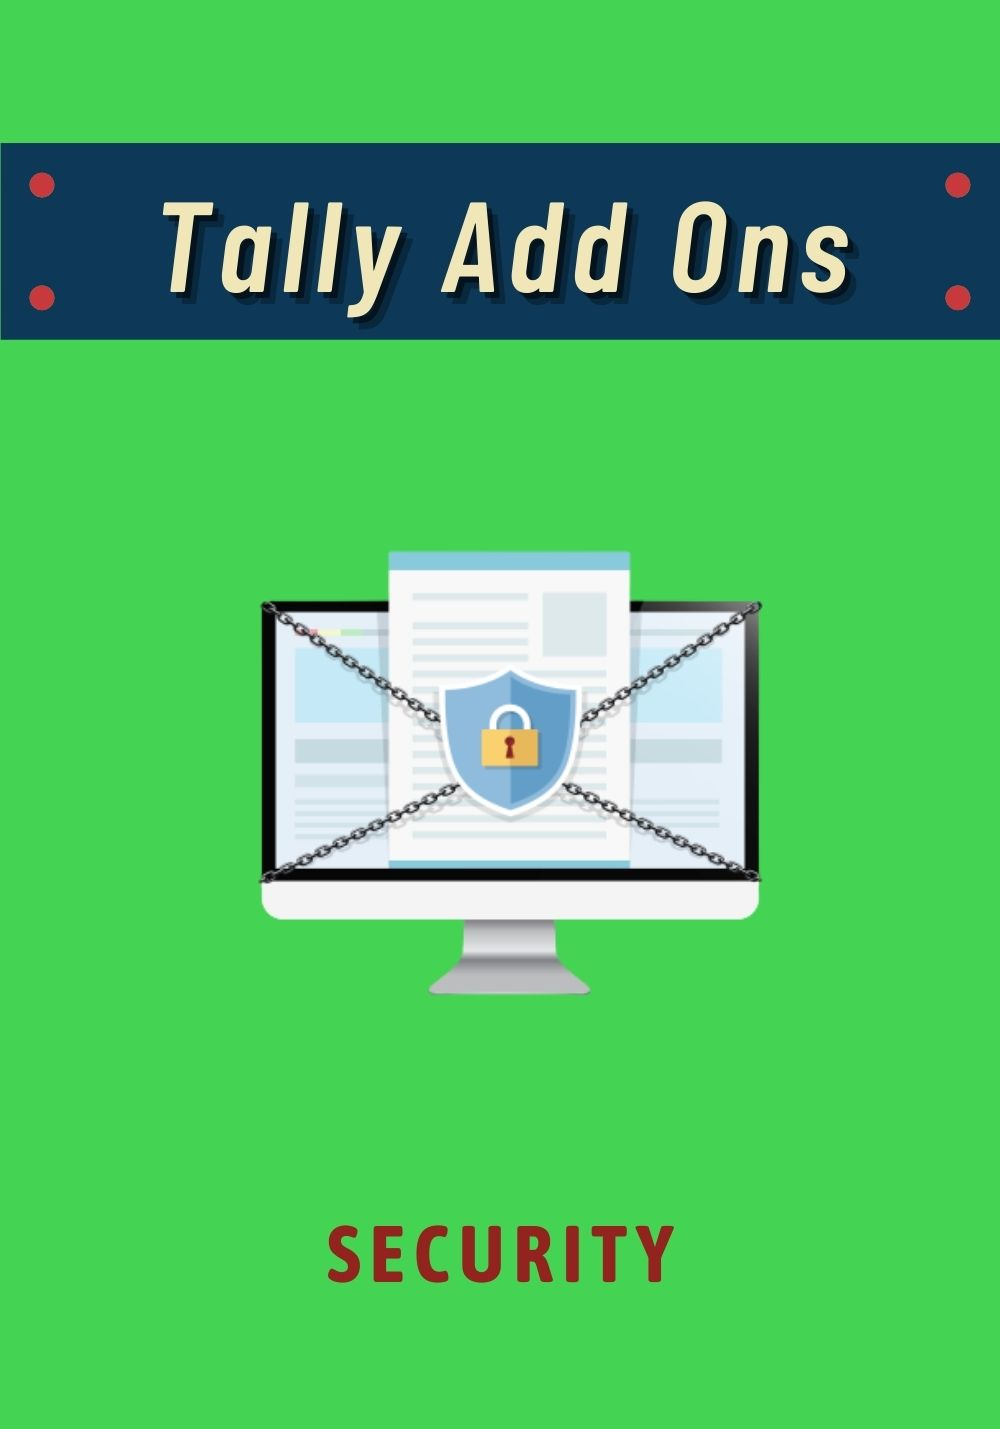 Tally Add Ons - Security